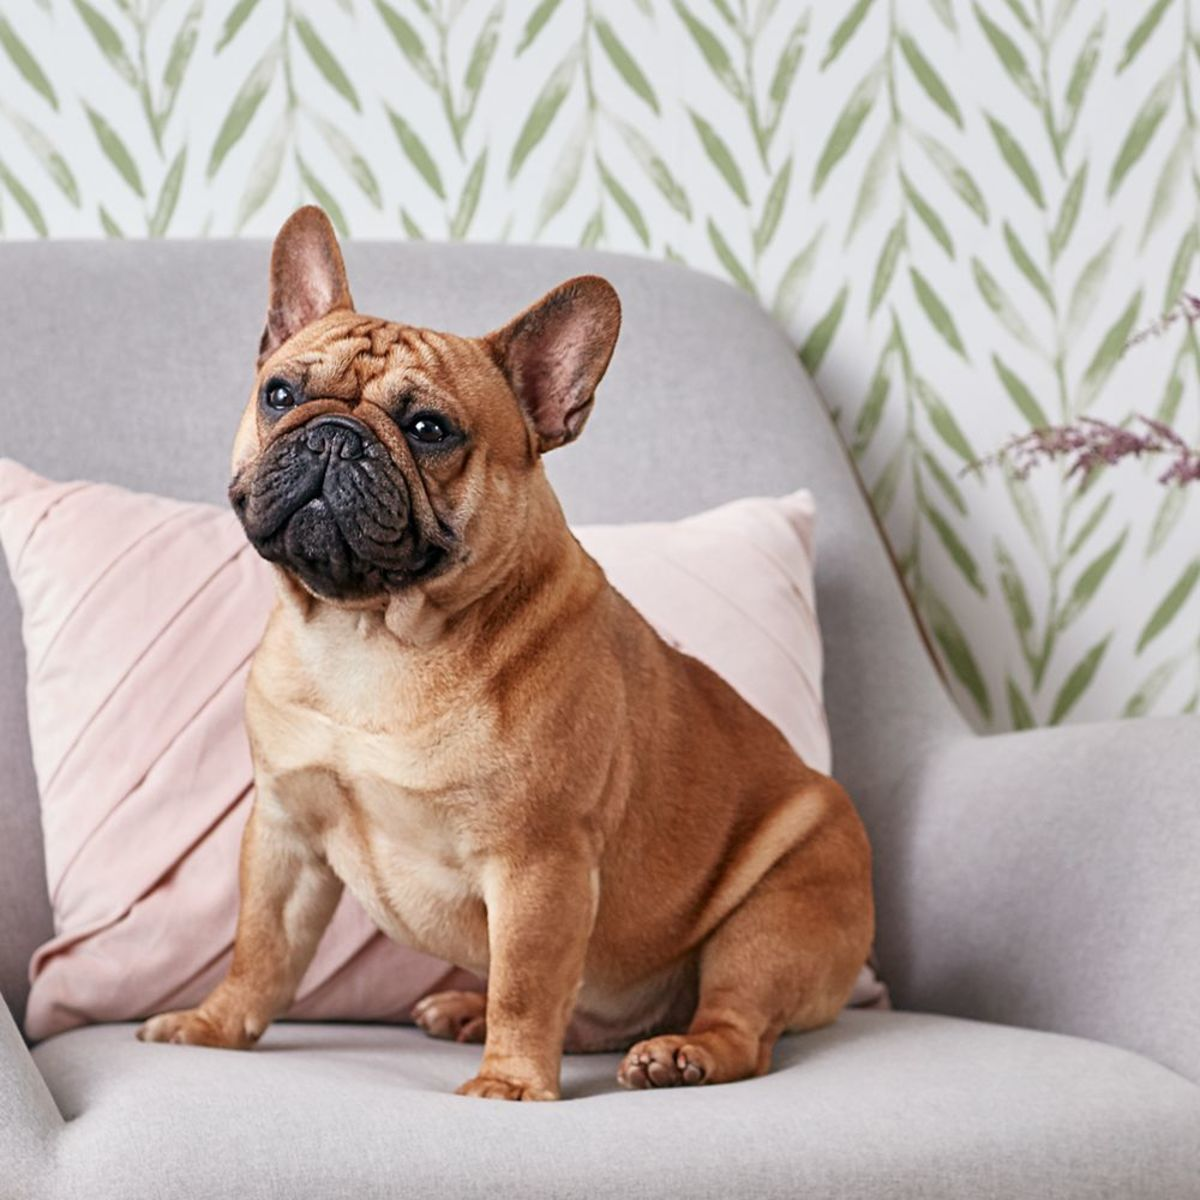 The French bulldog, or Frenchie, is a sturdy, compact dog breed with a large head, short snout, and bat-like ears. This breed is lively, lovable, and playful.